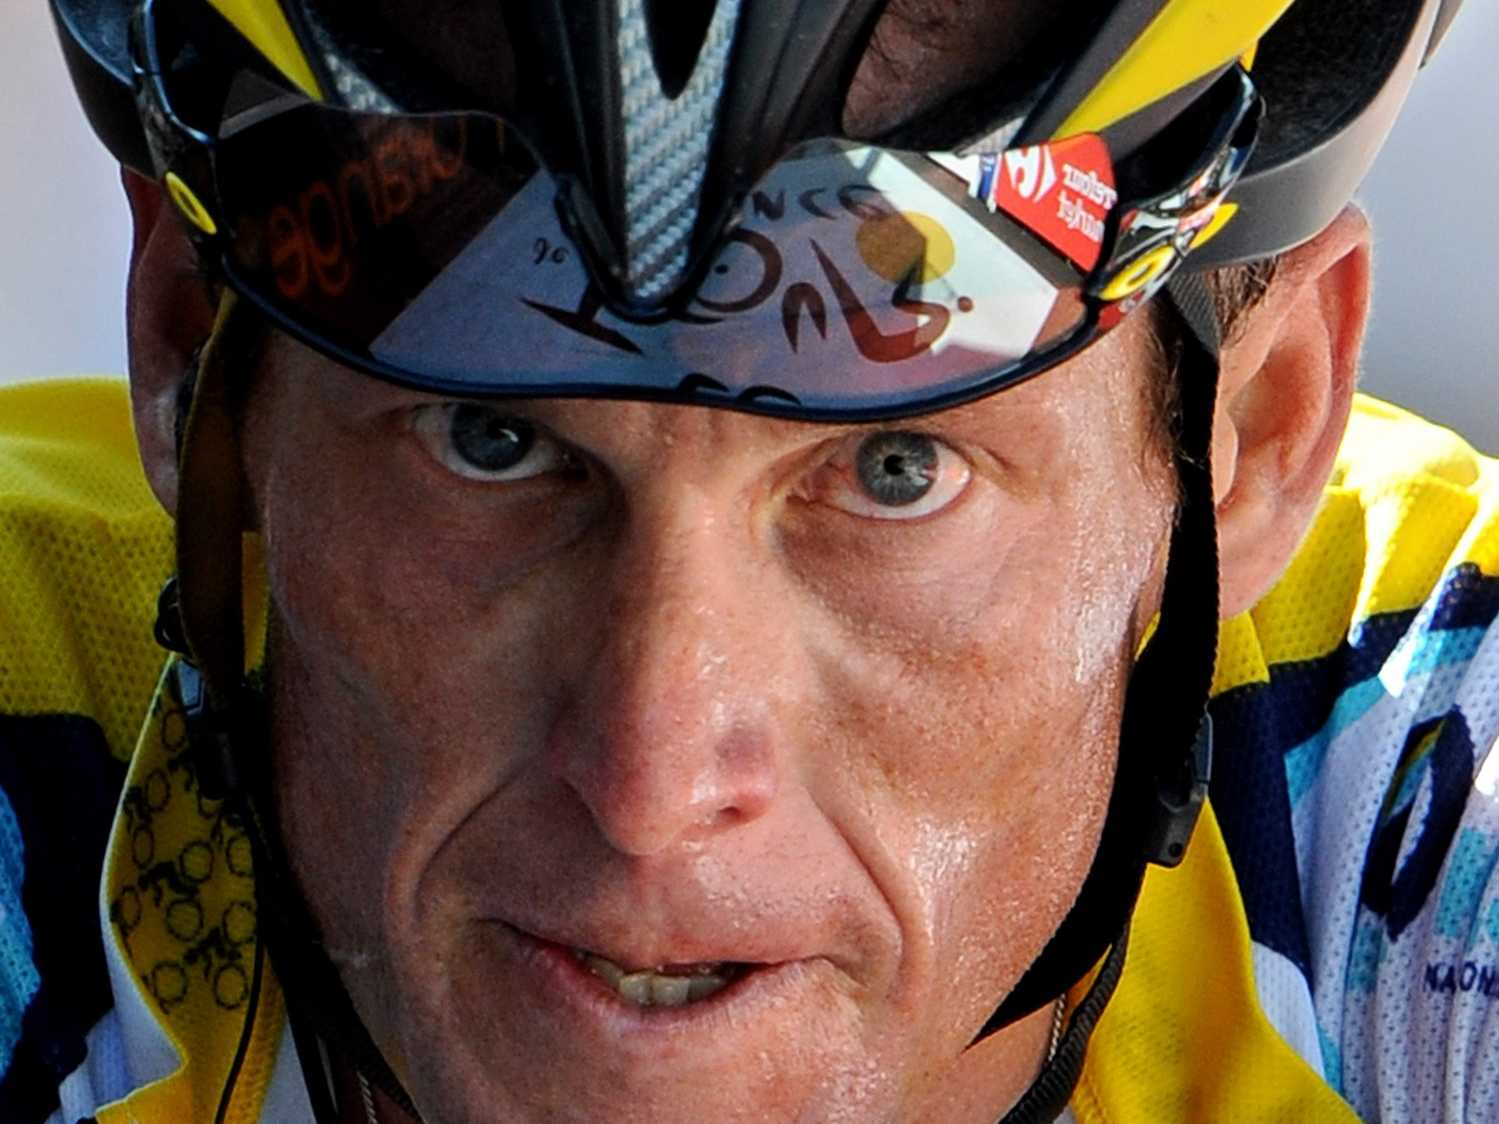 The lance armstrong doping case